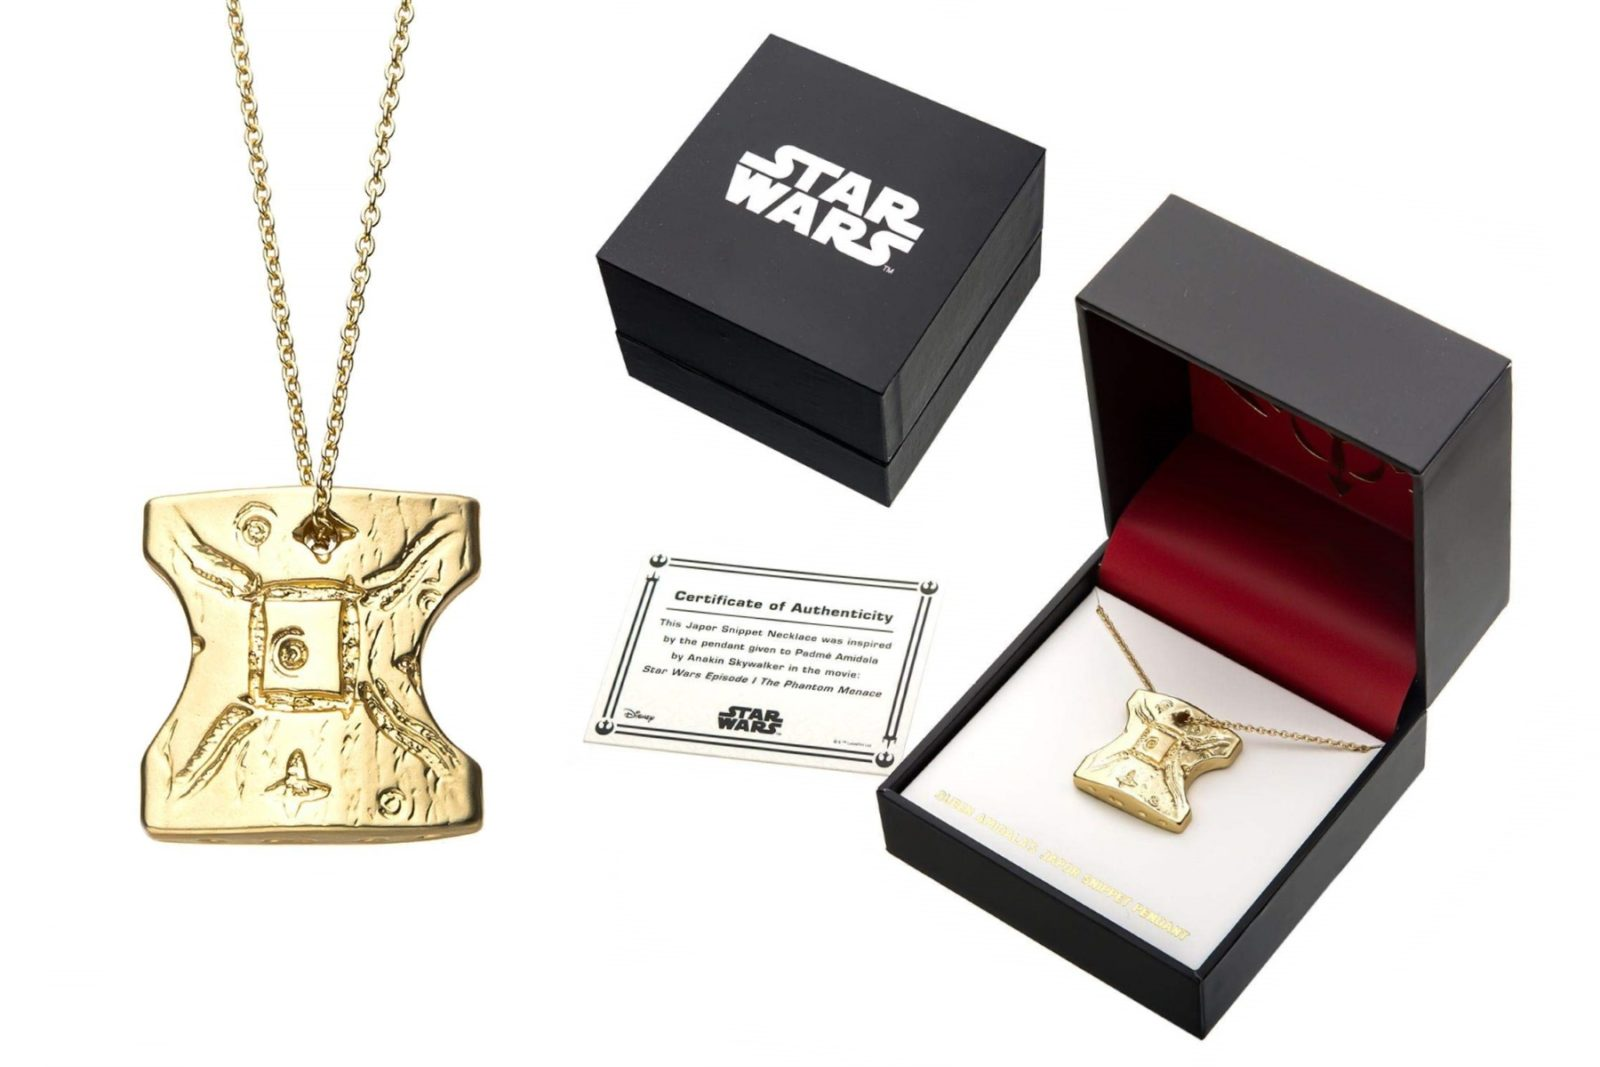 Star Wars Japor Snippet Necklace on Amazon